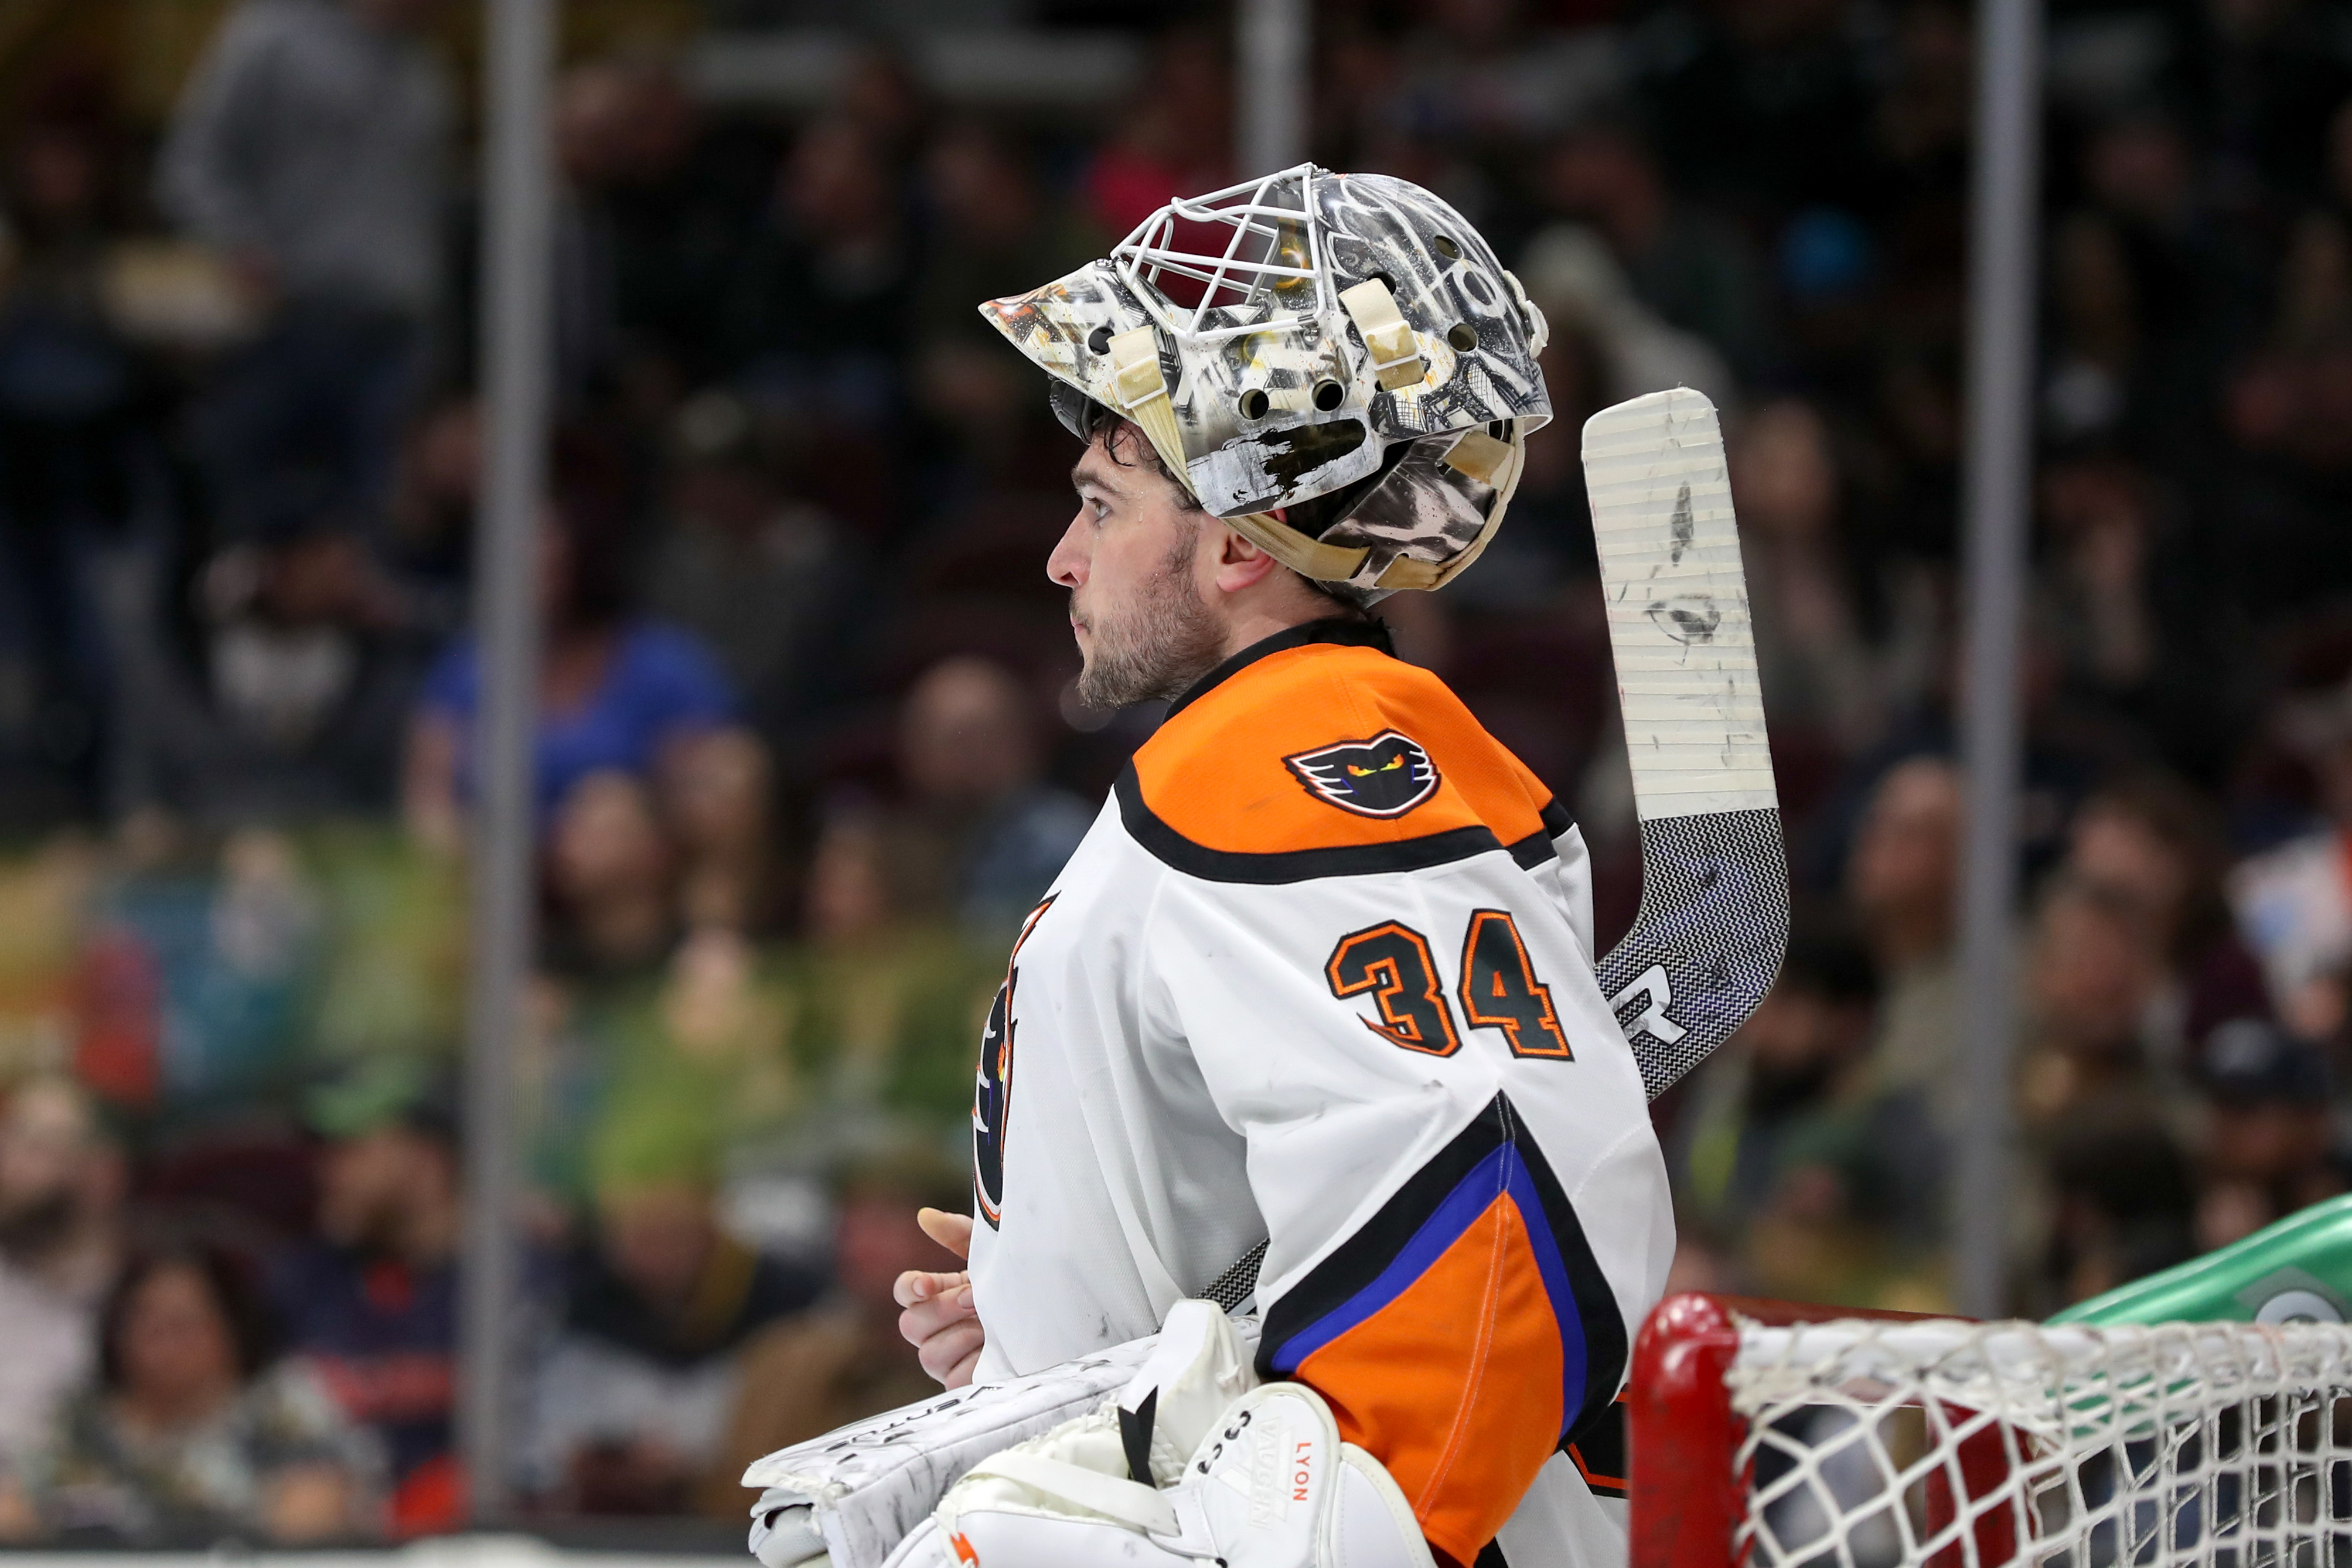 AHL: MAR 30 Lehigh Valley Phantoms at Cleveland Monsters